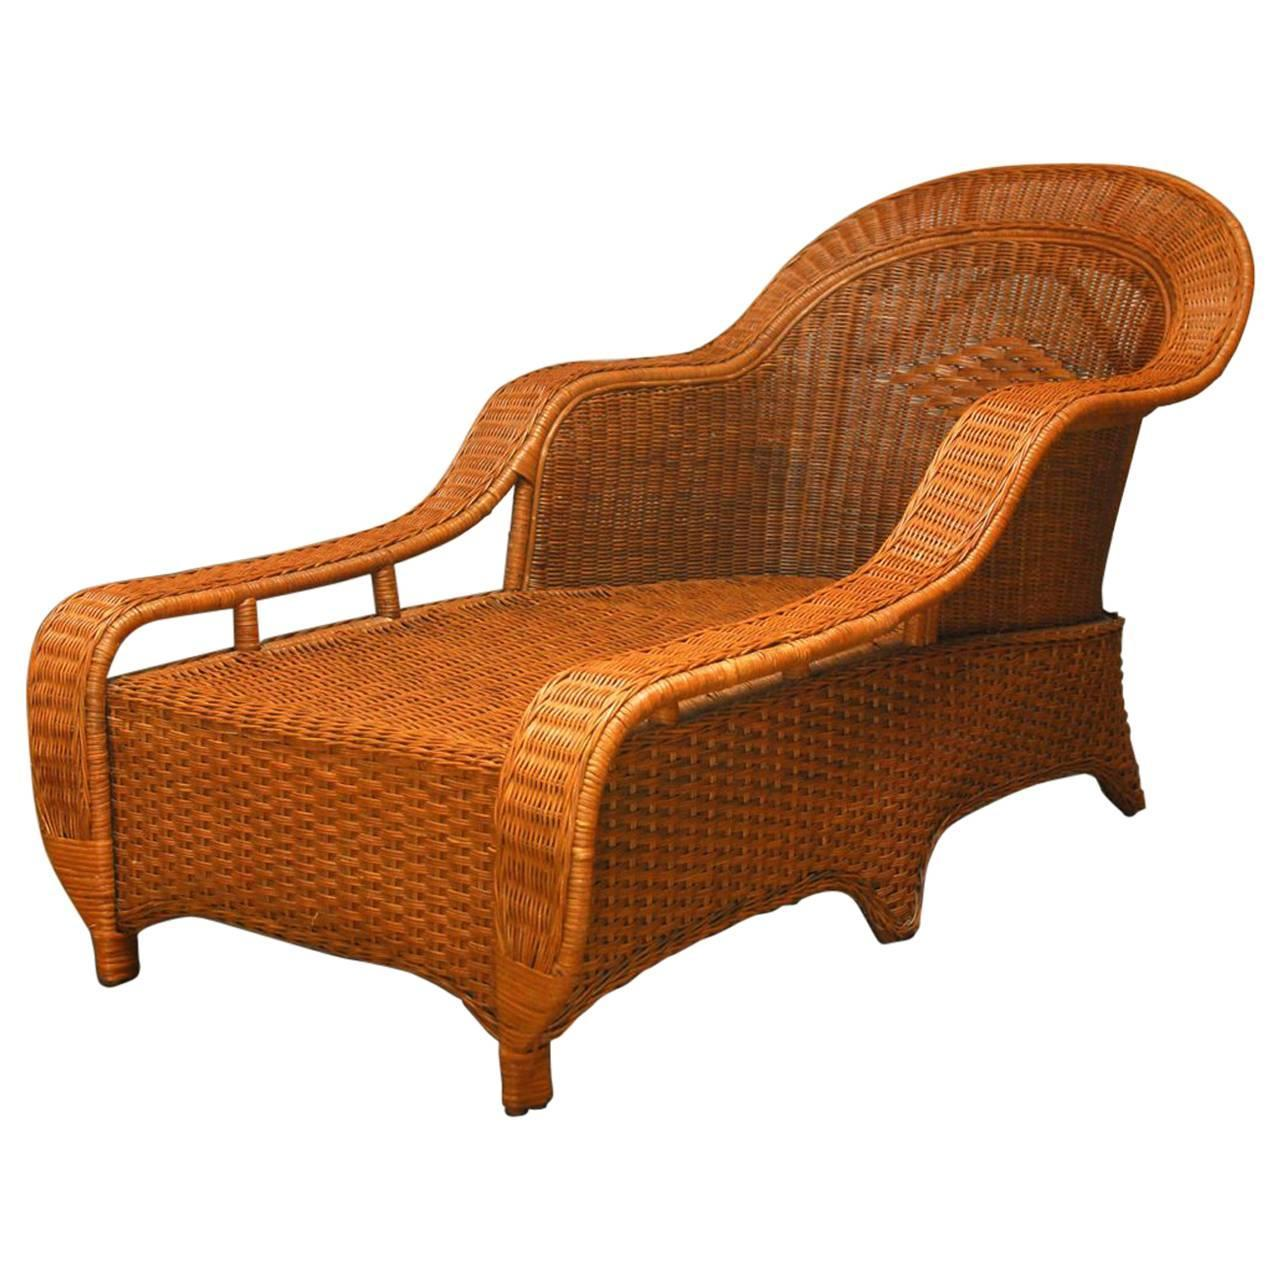 sc 1 st  1stDibs & French Style Wicker Chaise Longue by Palecek For Sale at 1stdibs